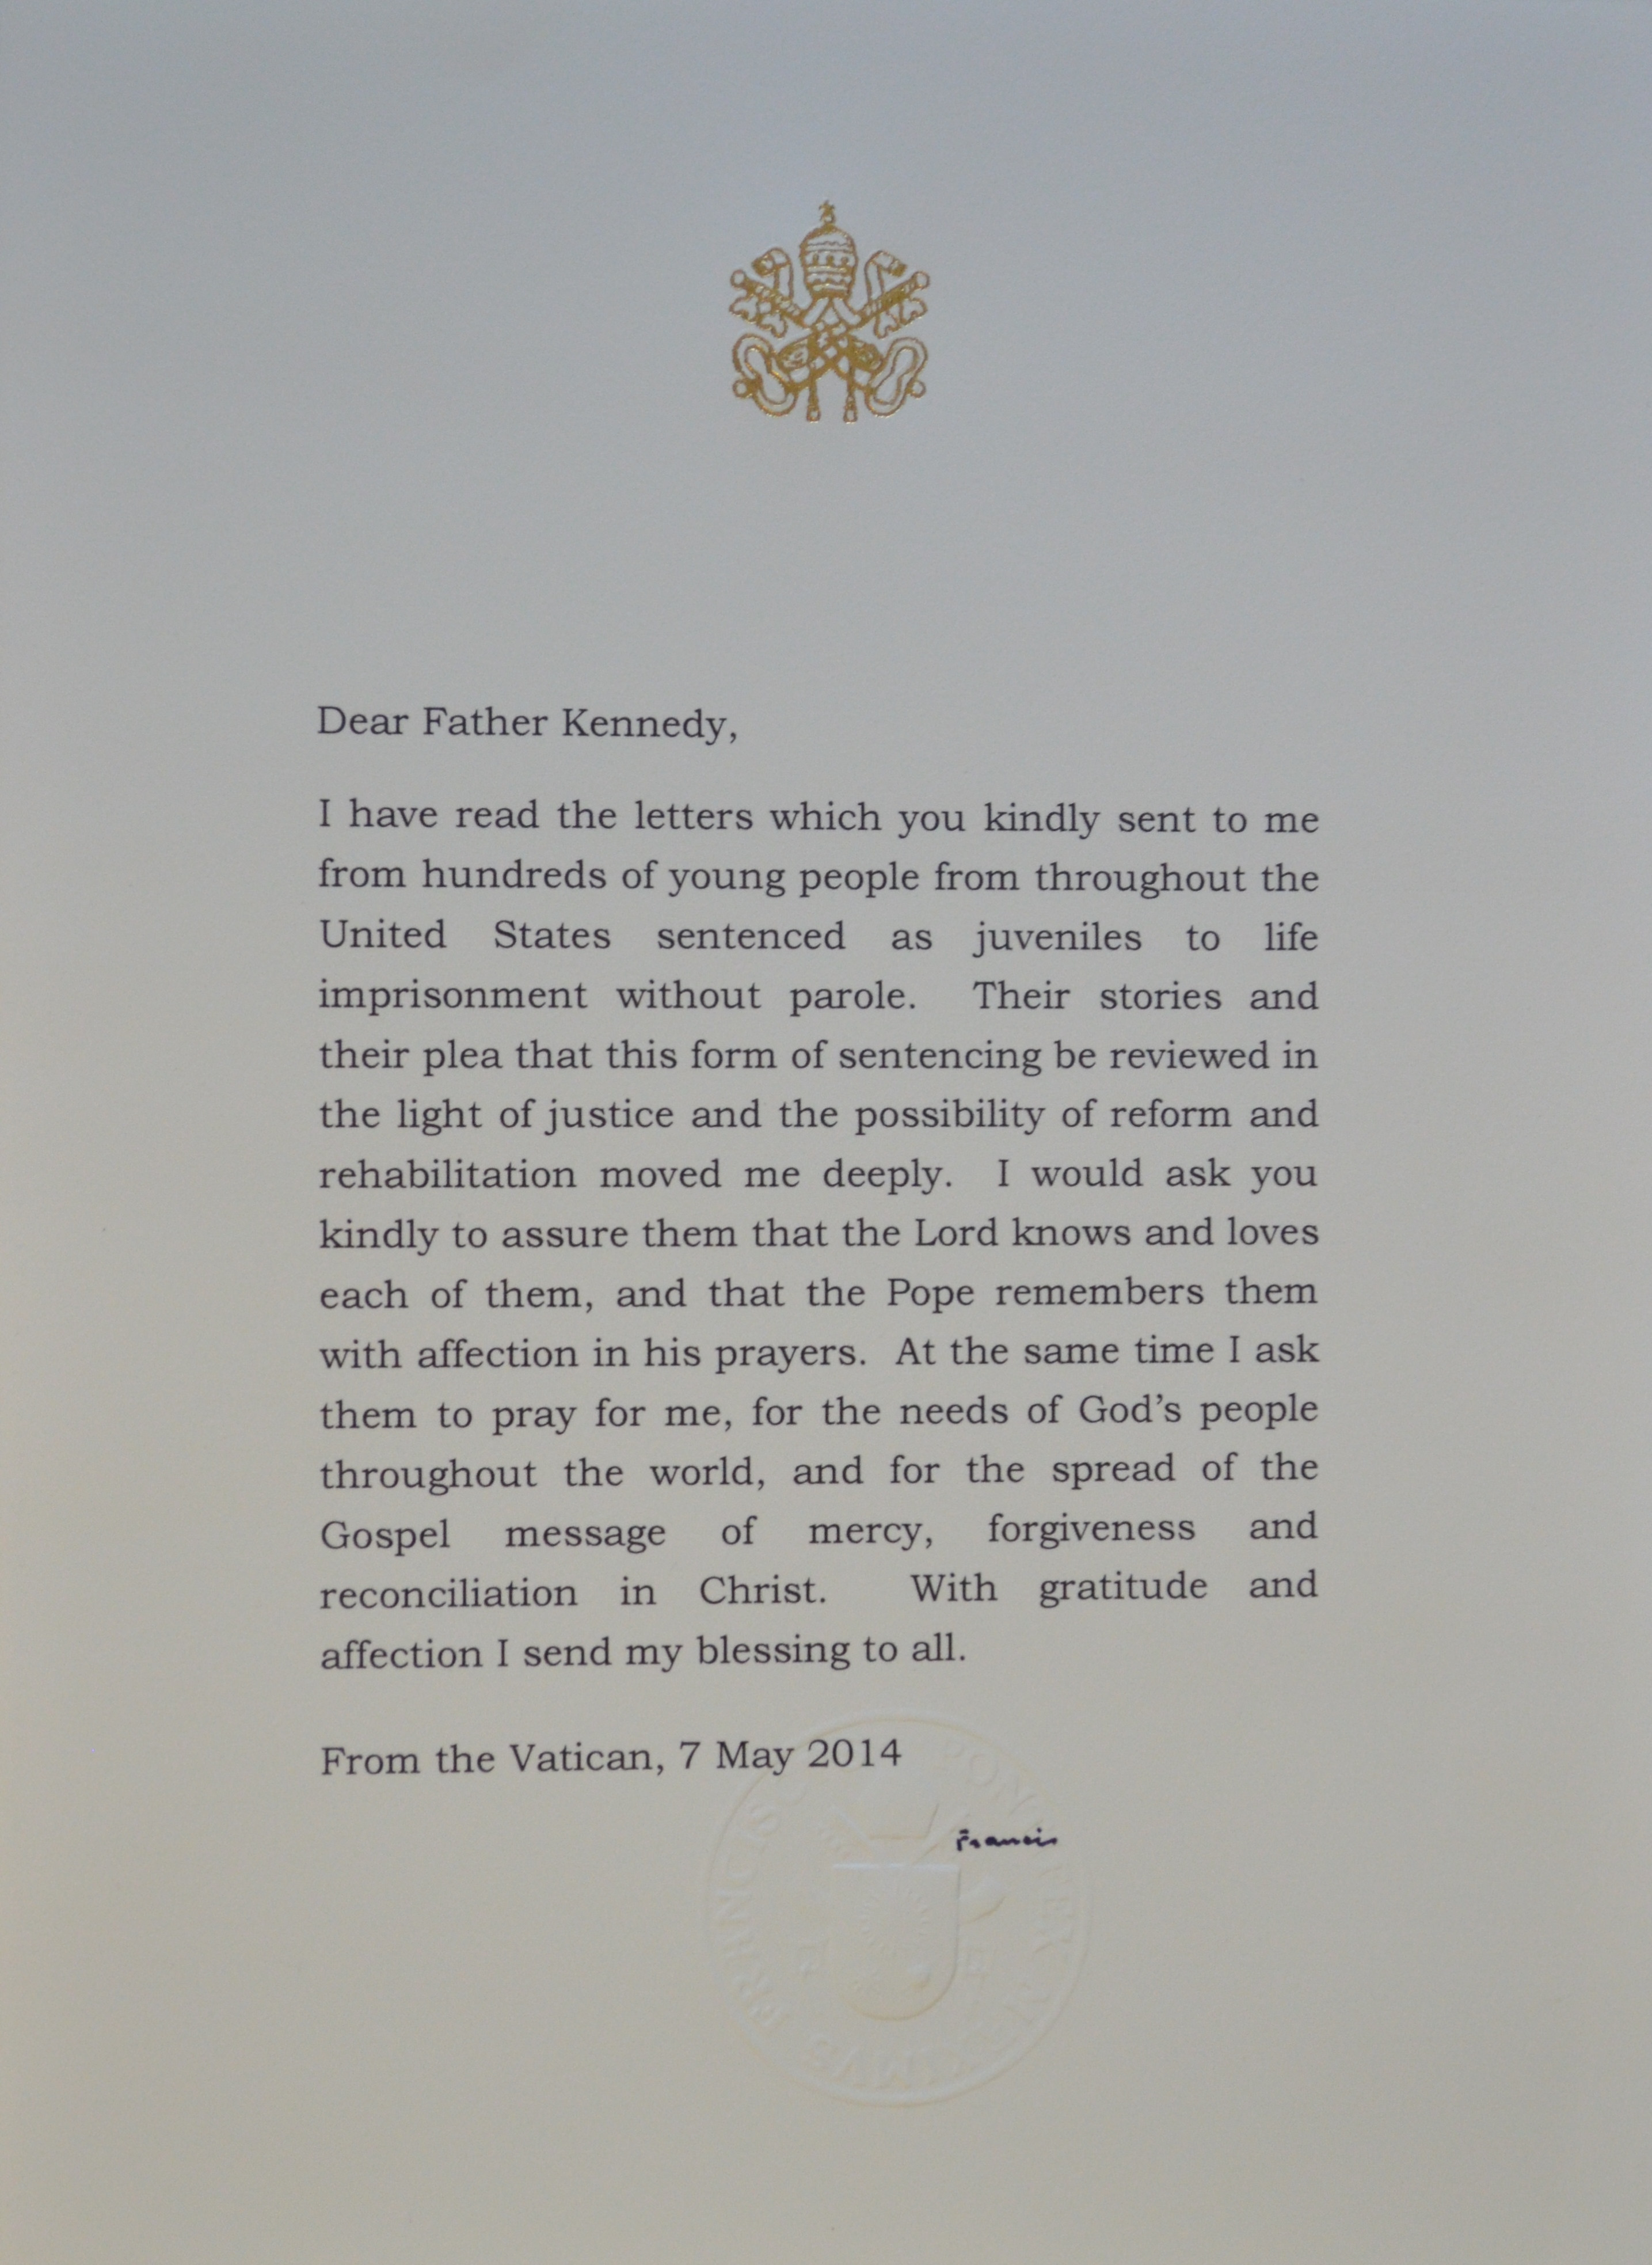 a letter from pope francis